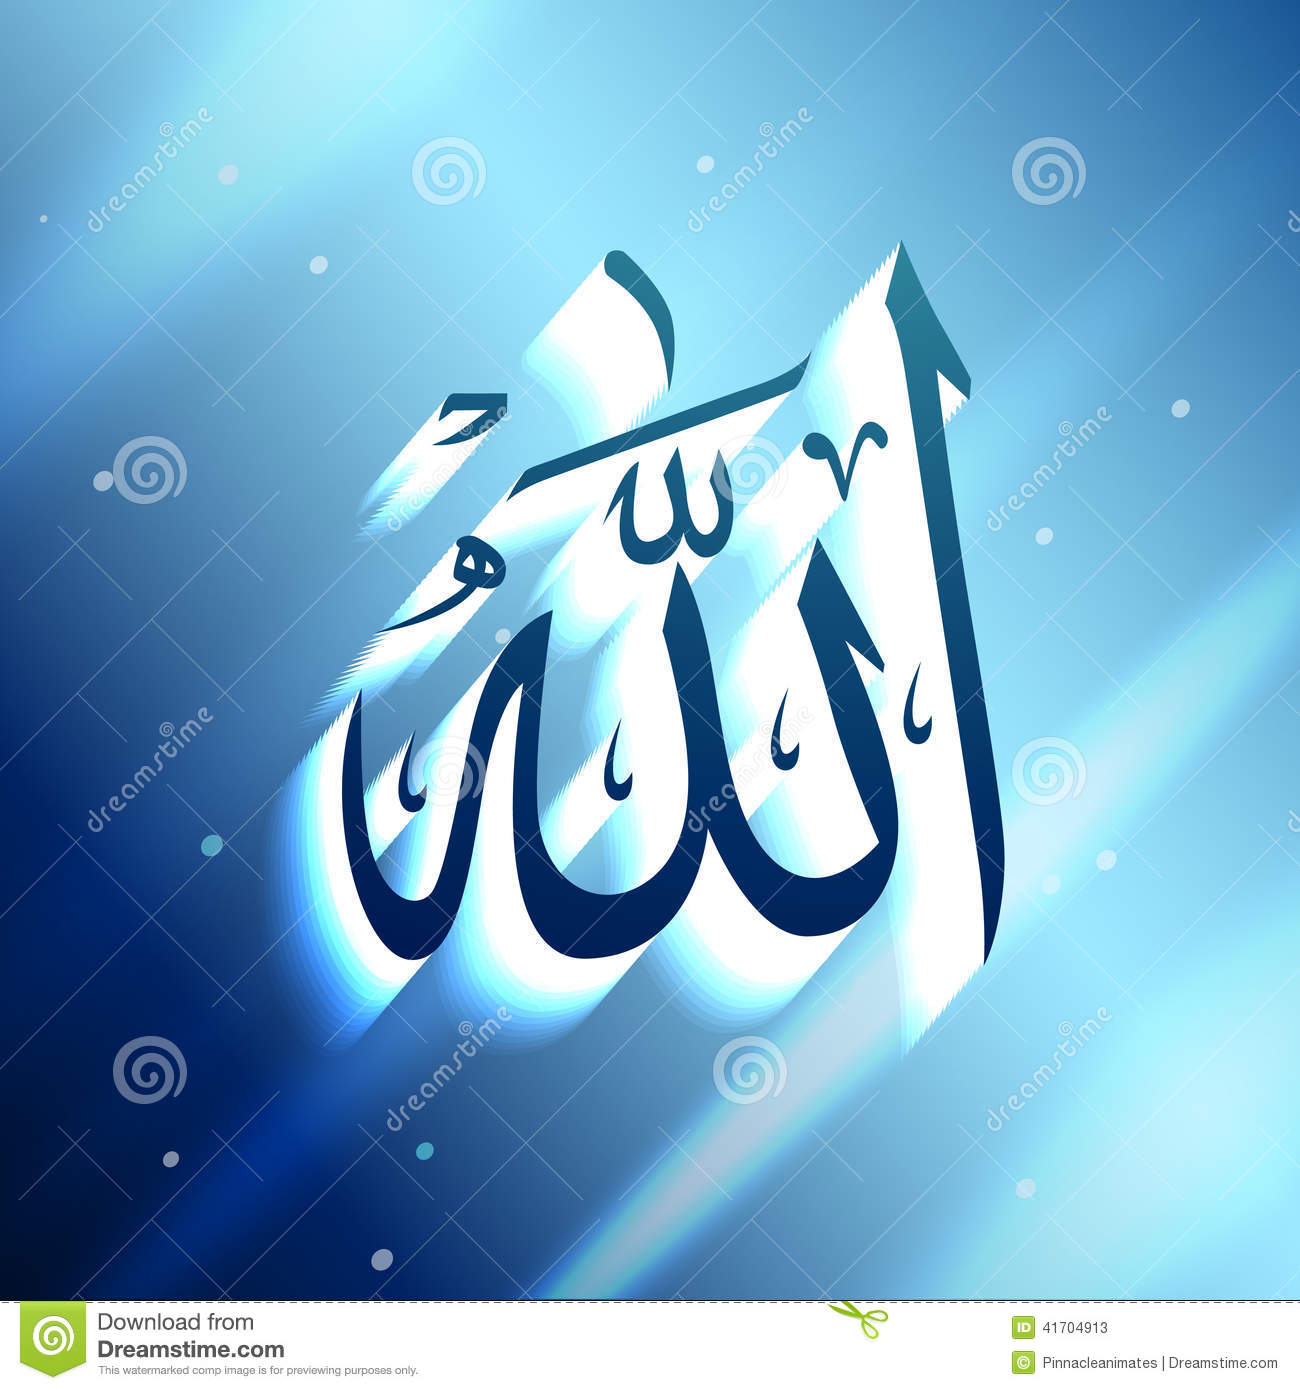 Islam Allah Background Stock Vector Image: 41704913 - 1300x1390 - jpeg